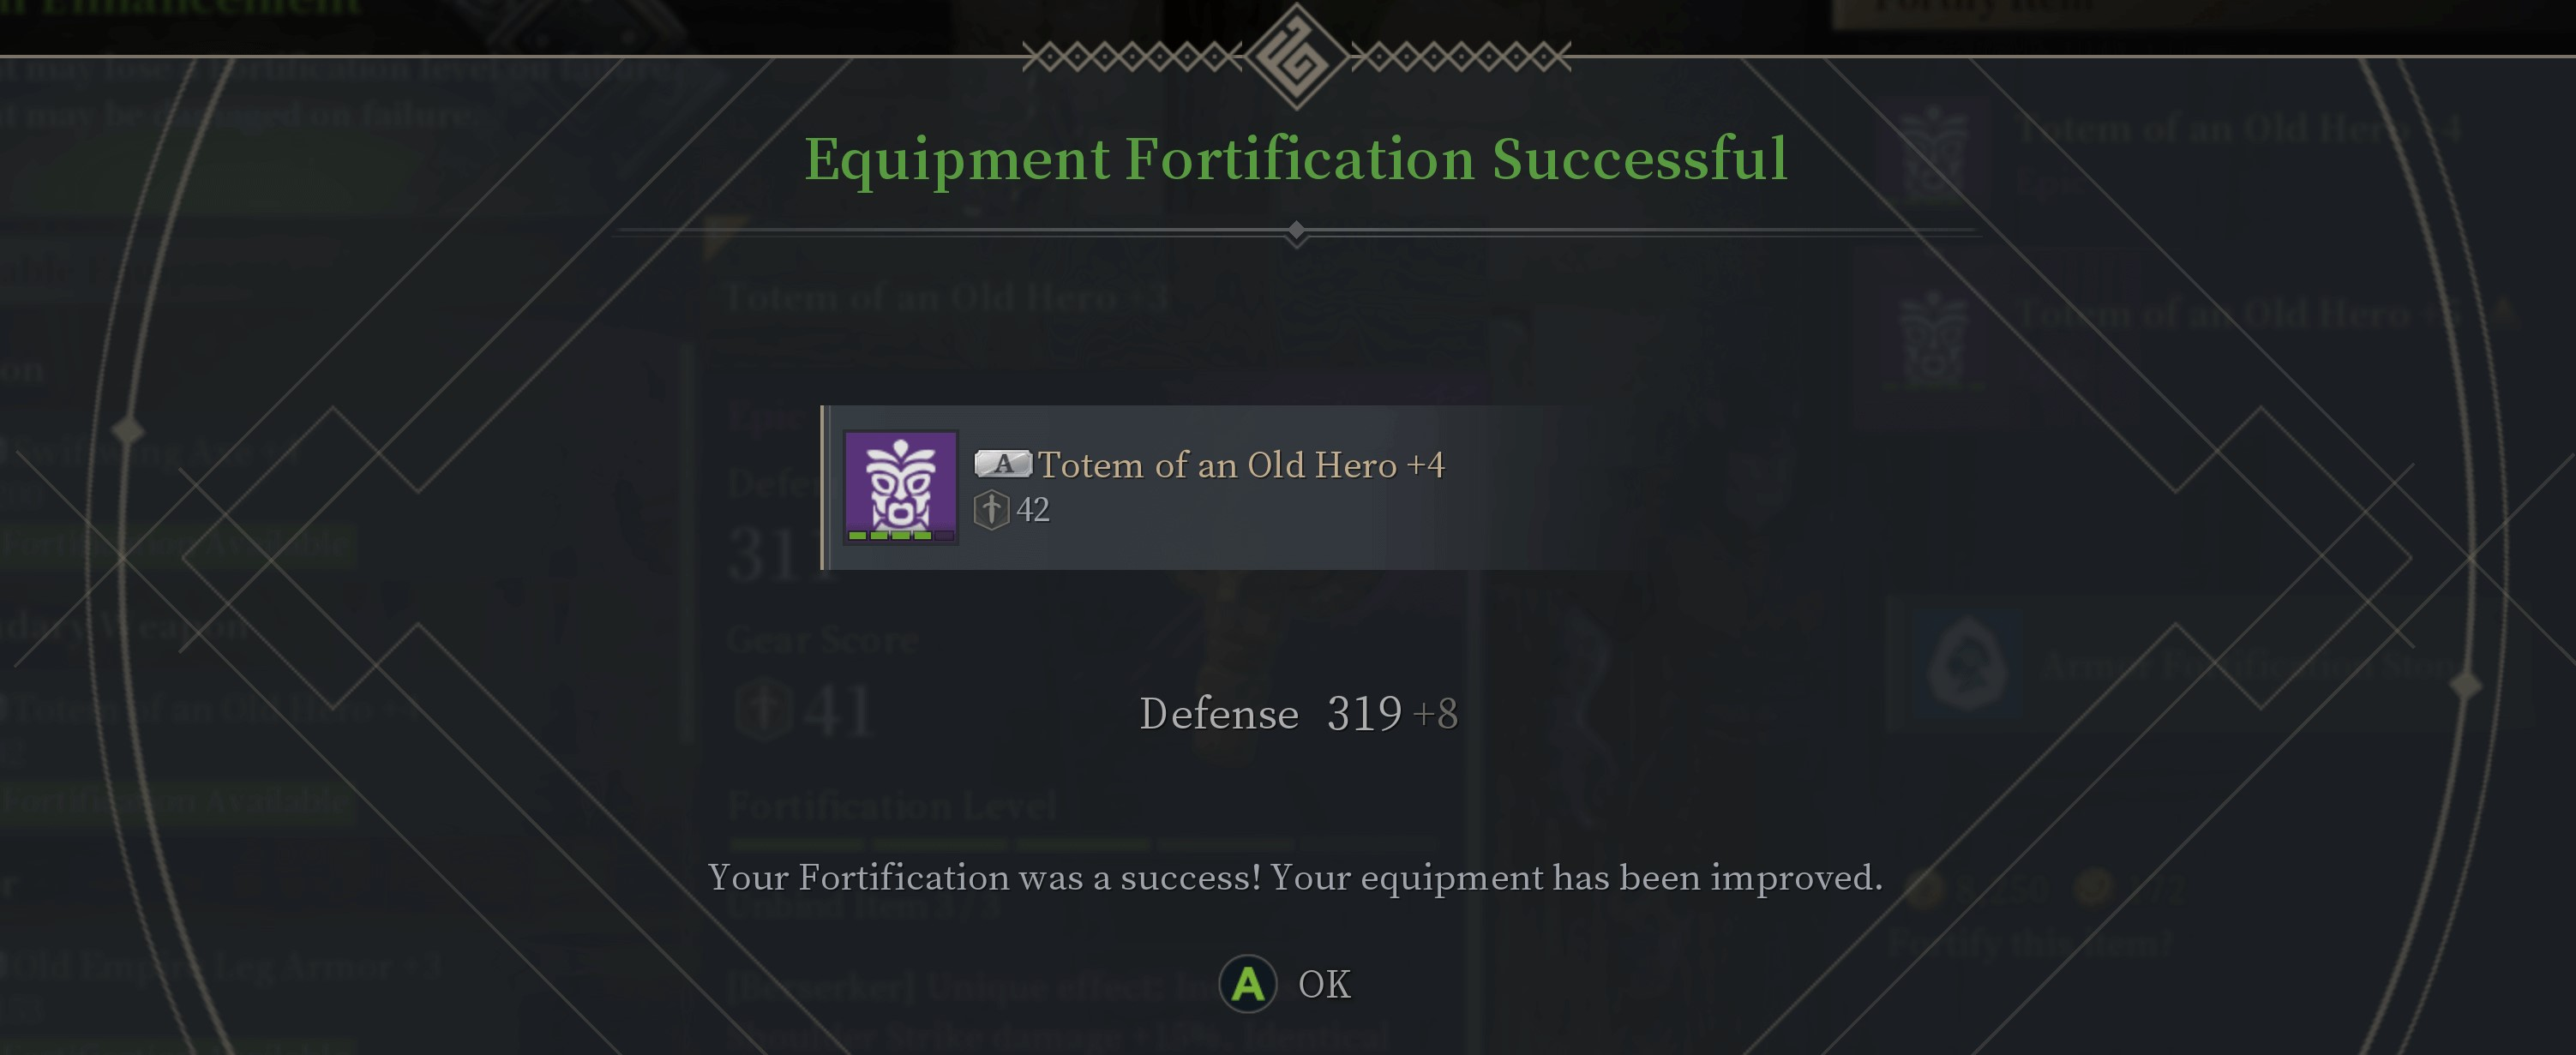 Common_Enhancement_Fortification_Successful__2_.jpg